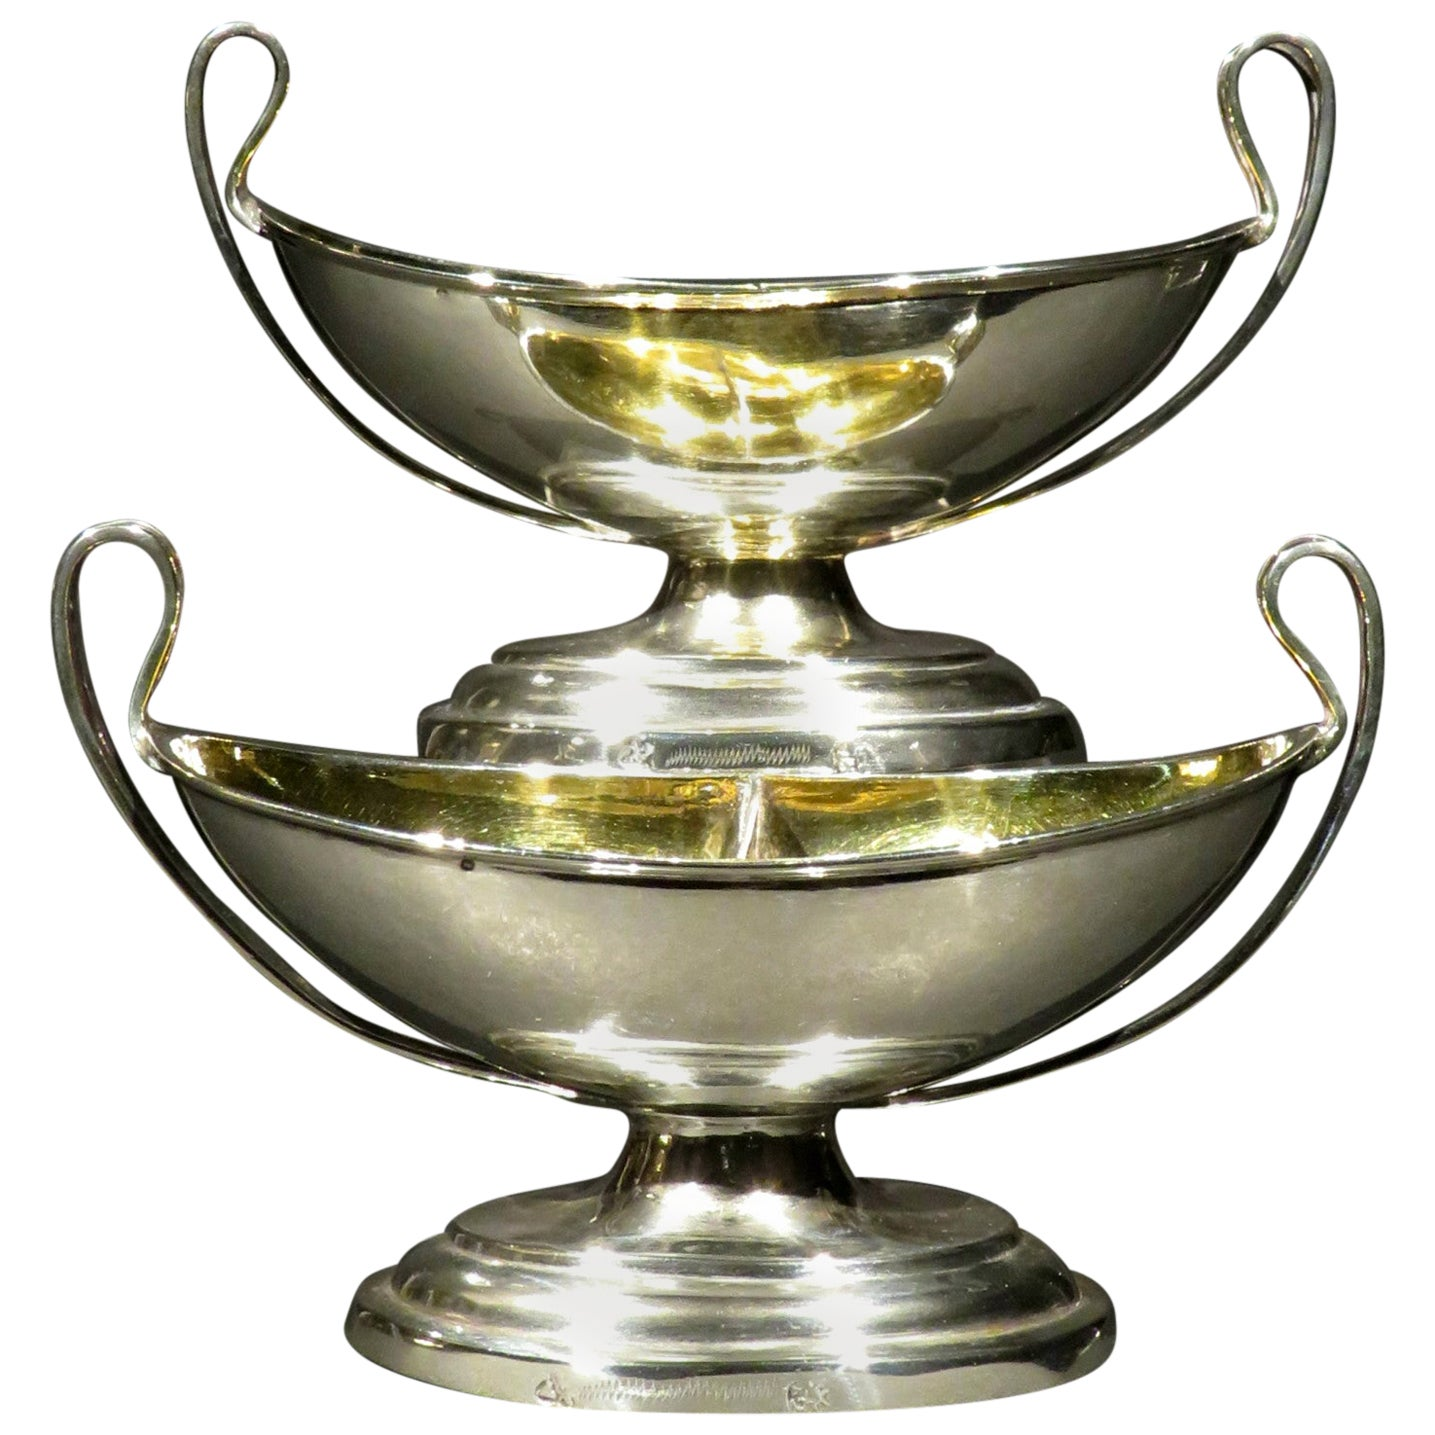 Fine Pair of Neoclassical Inspired German Silver Double Salt Cellars, Circa 1830